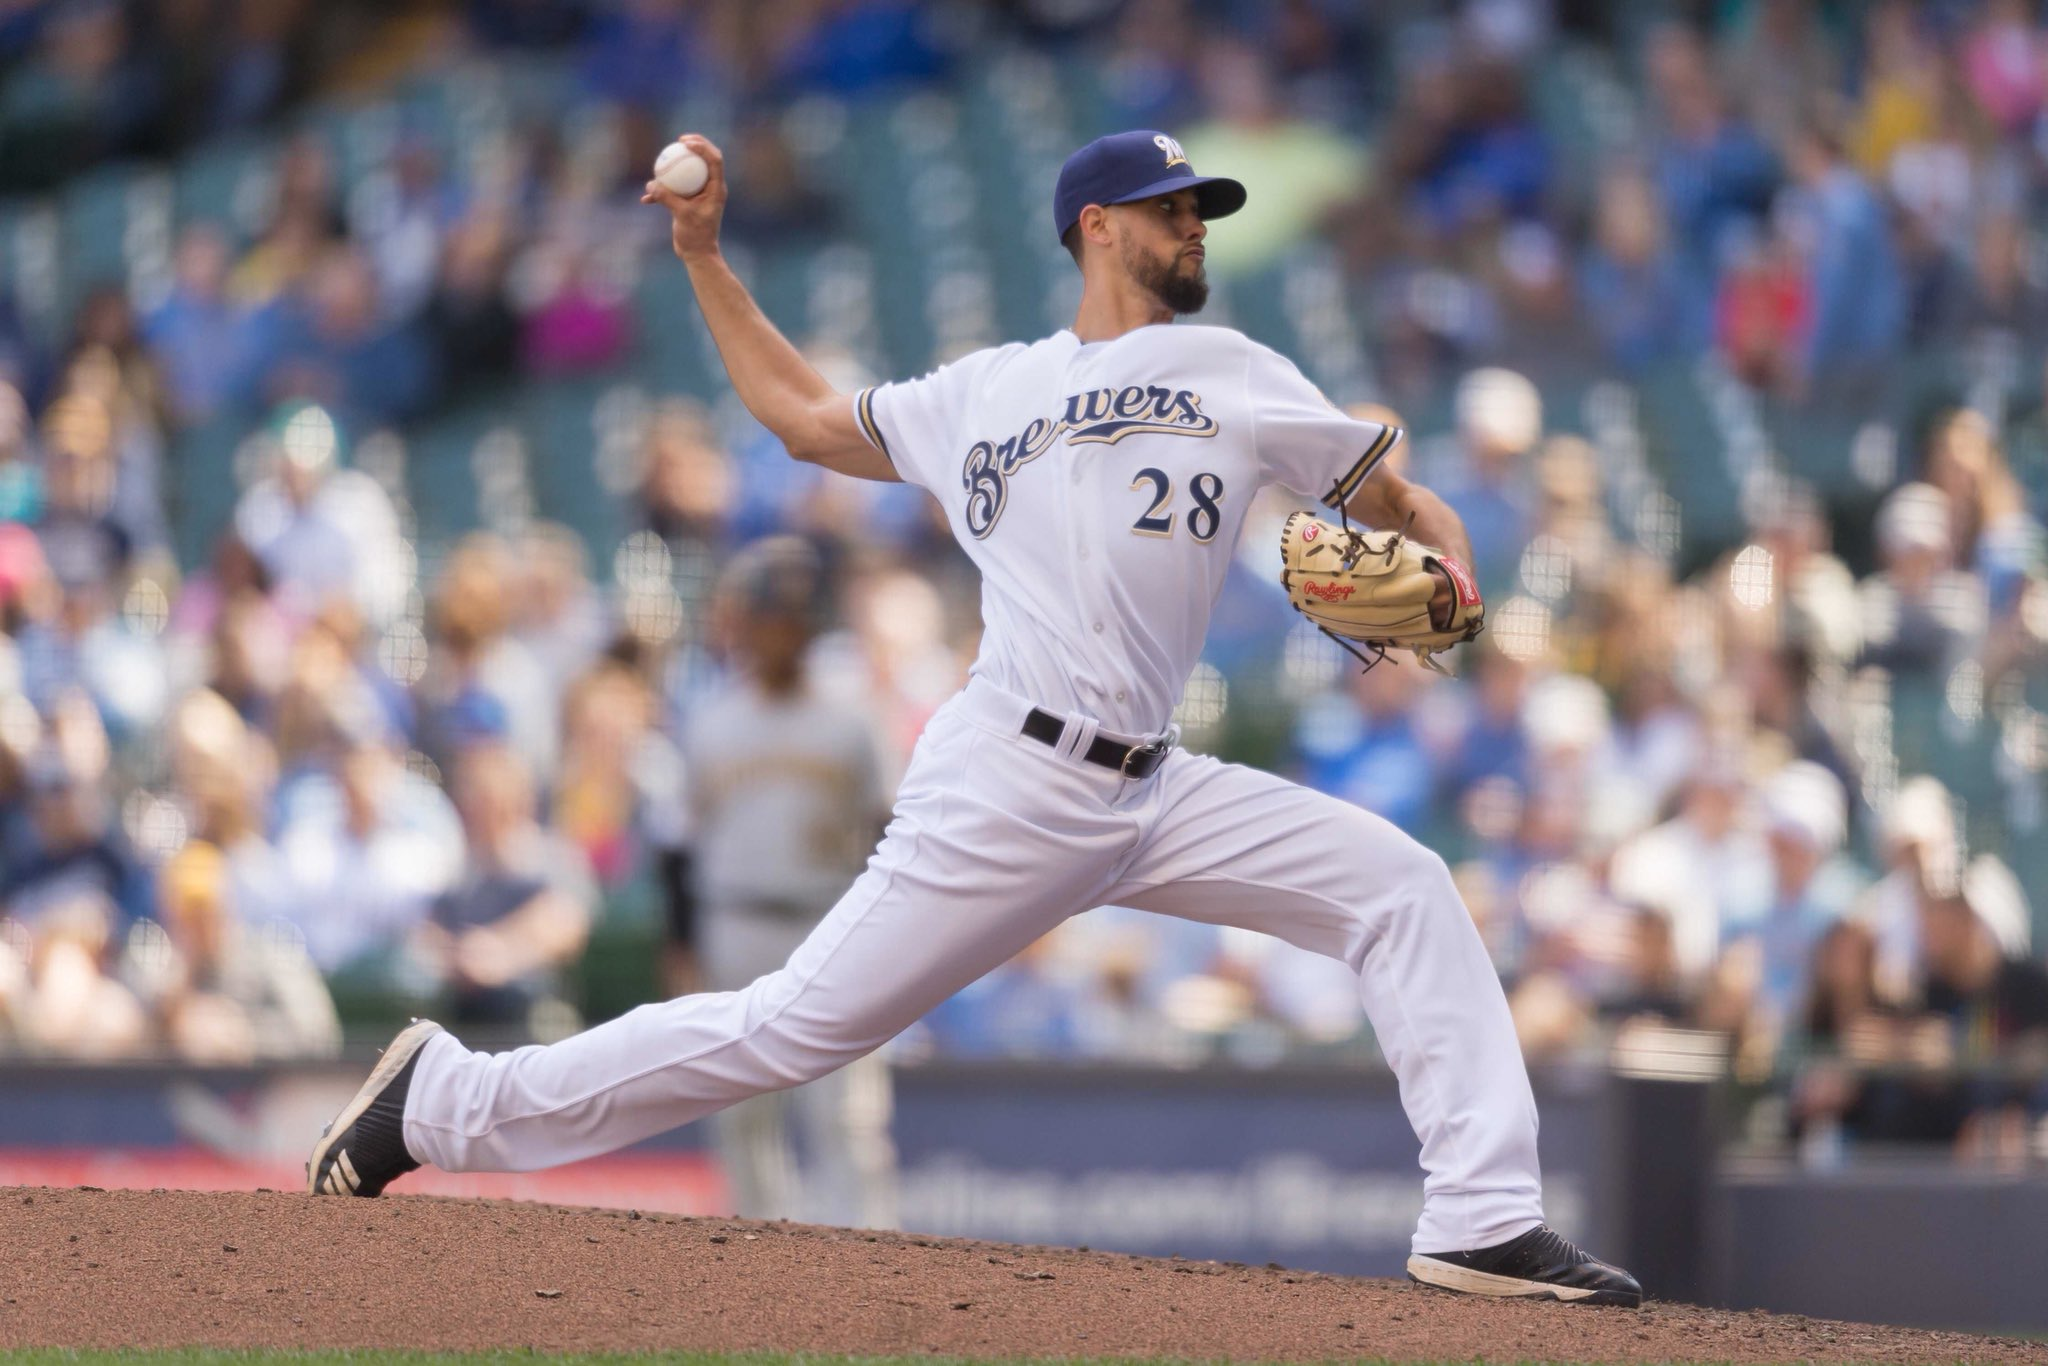 RHP Jorge López has been recalled from Triple-A @skysox. INF Nate Orf has been optioned there. https://t.co/etsSkD1XPk